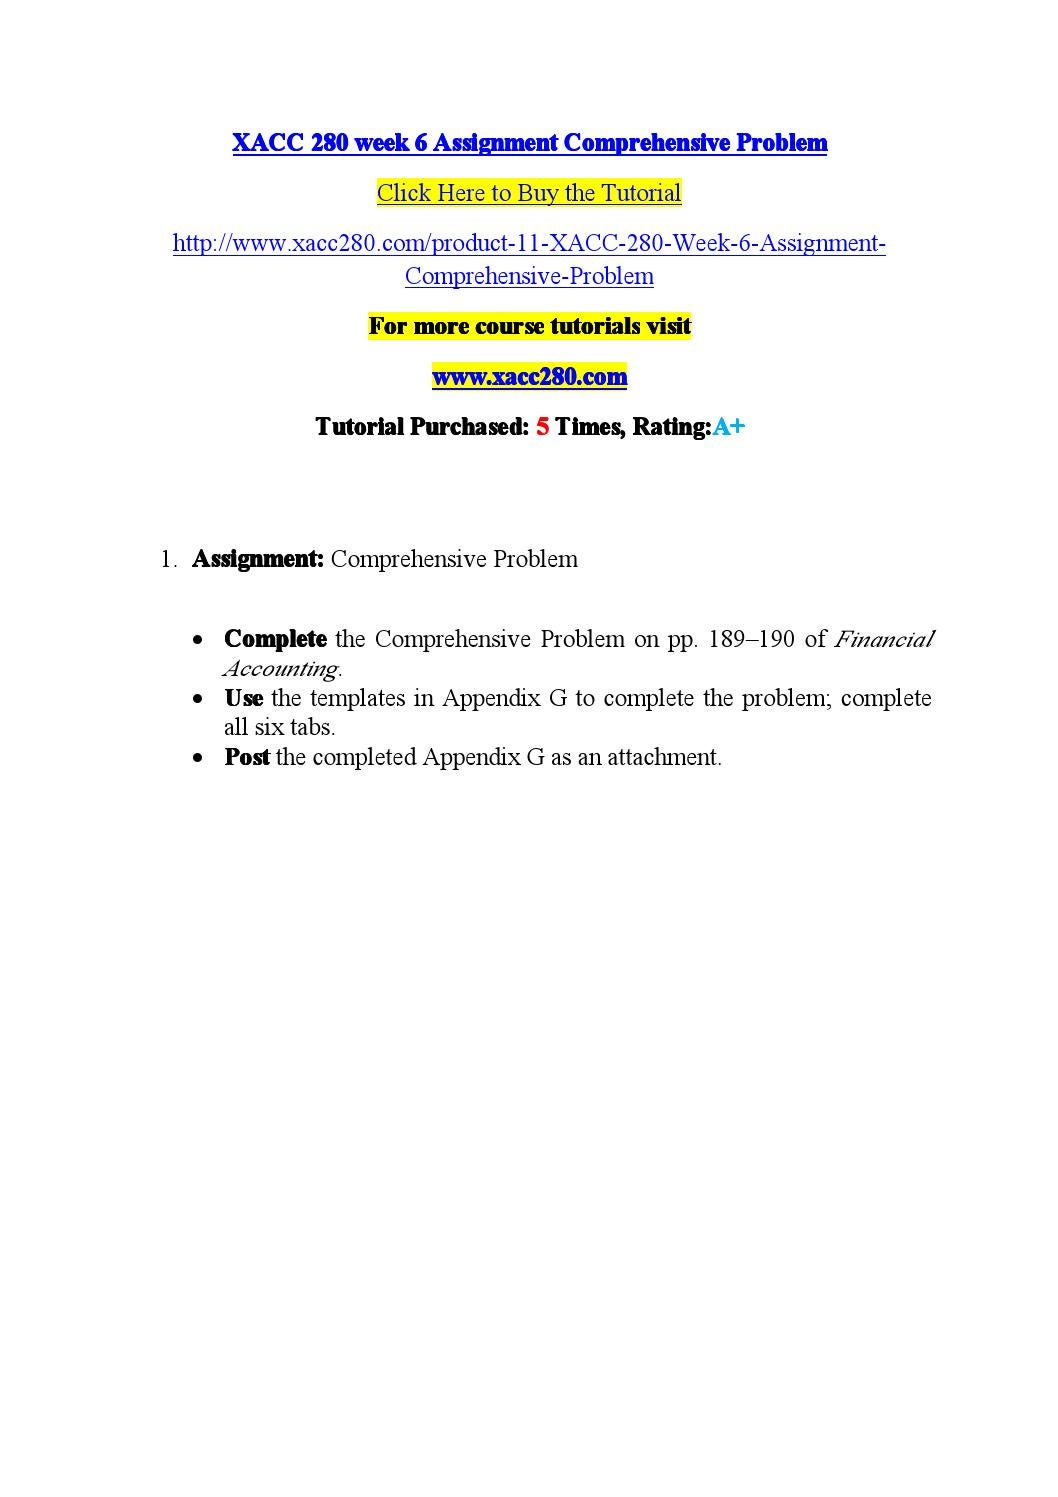 Xacc 280 week 6 assignment comprehensive problem by gtyyu7